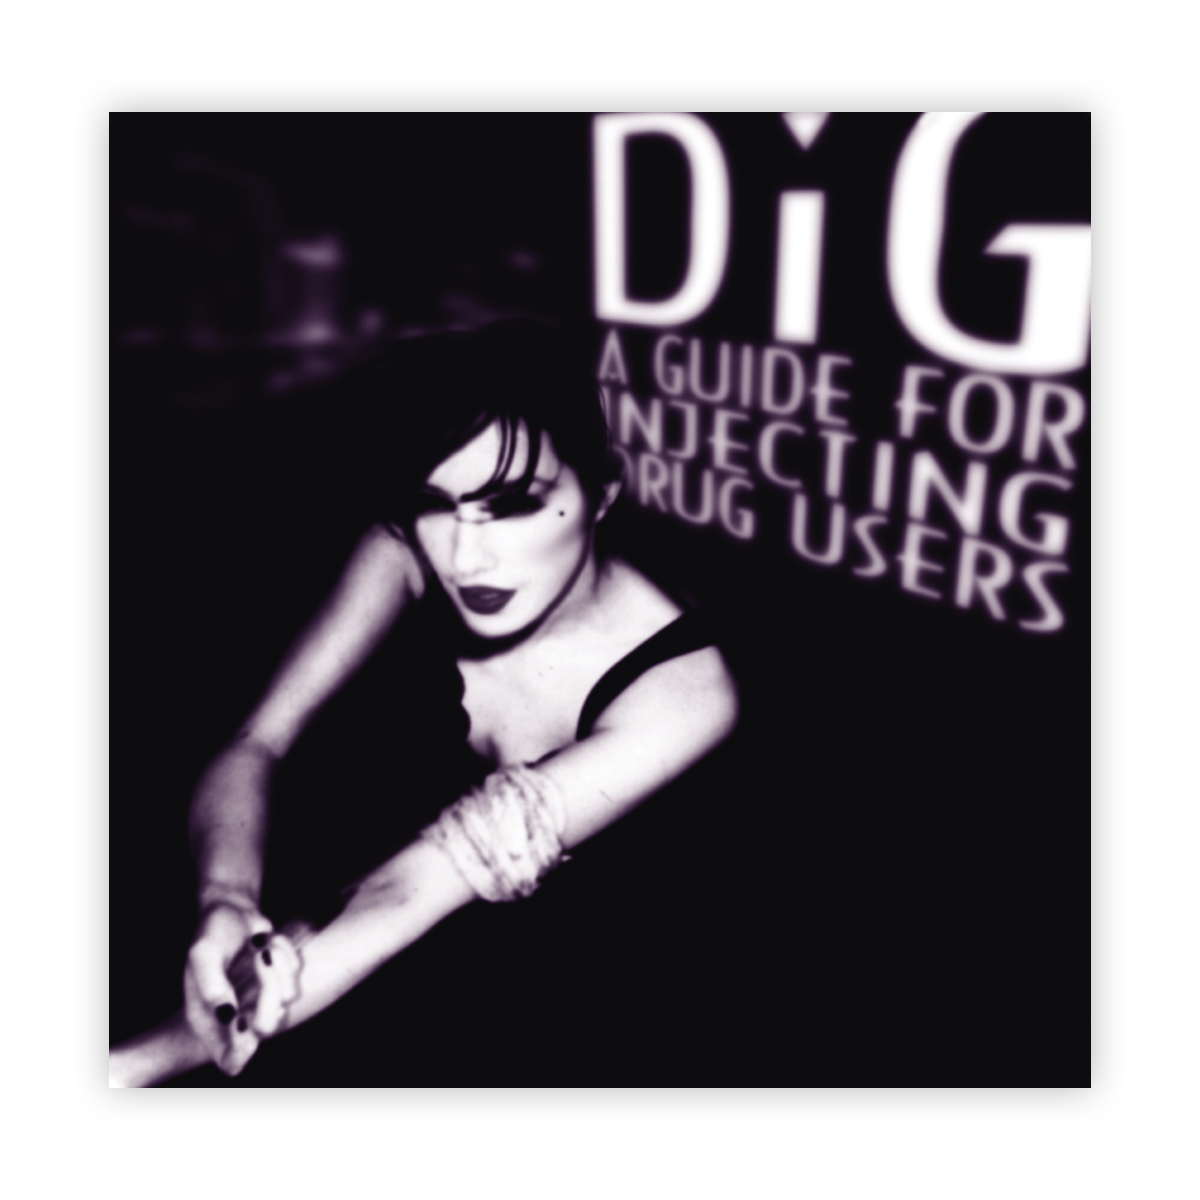 Dig - a guide for injecting drug users